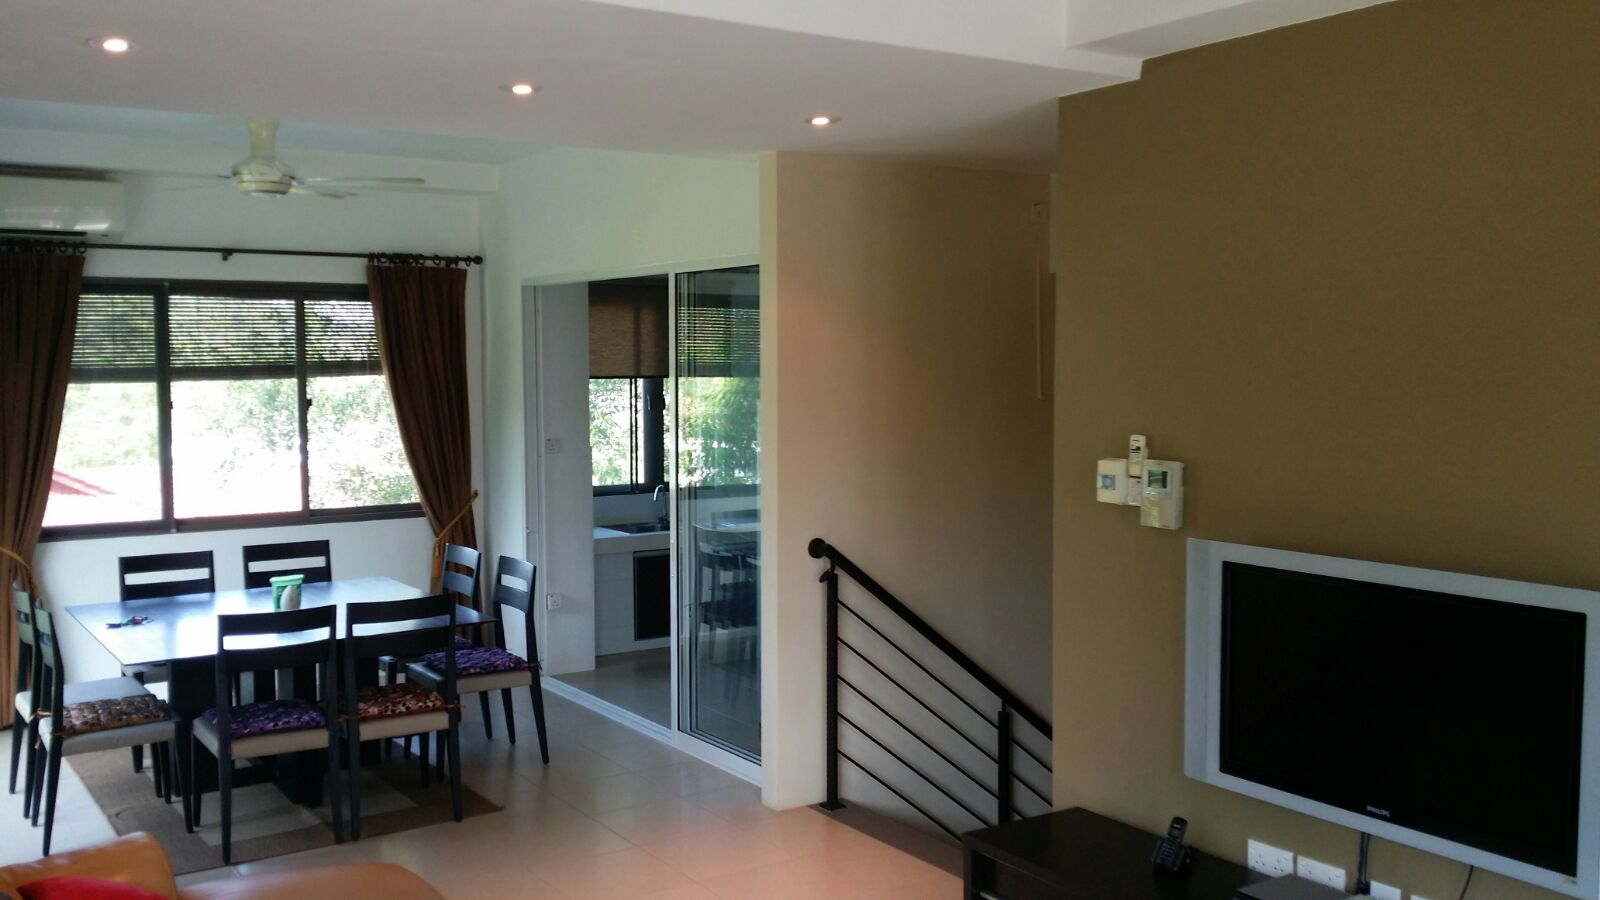 pan villa properties fully furnished two and a half